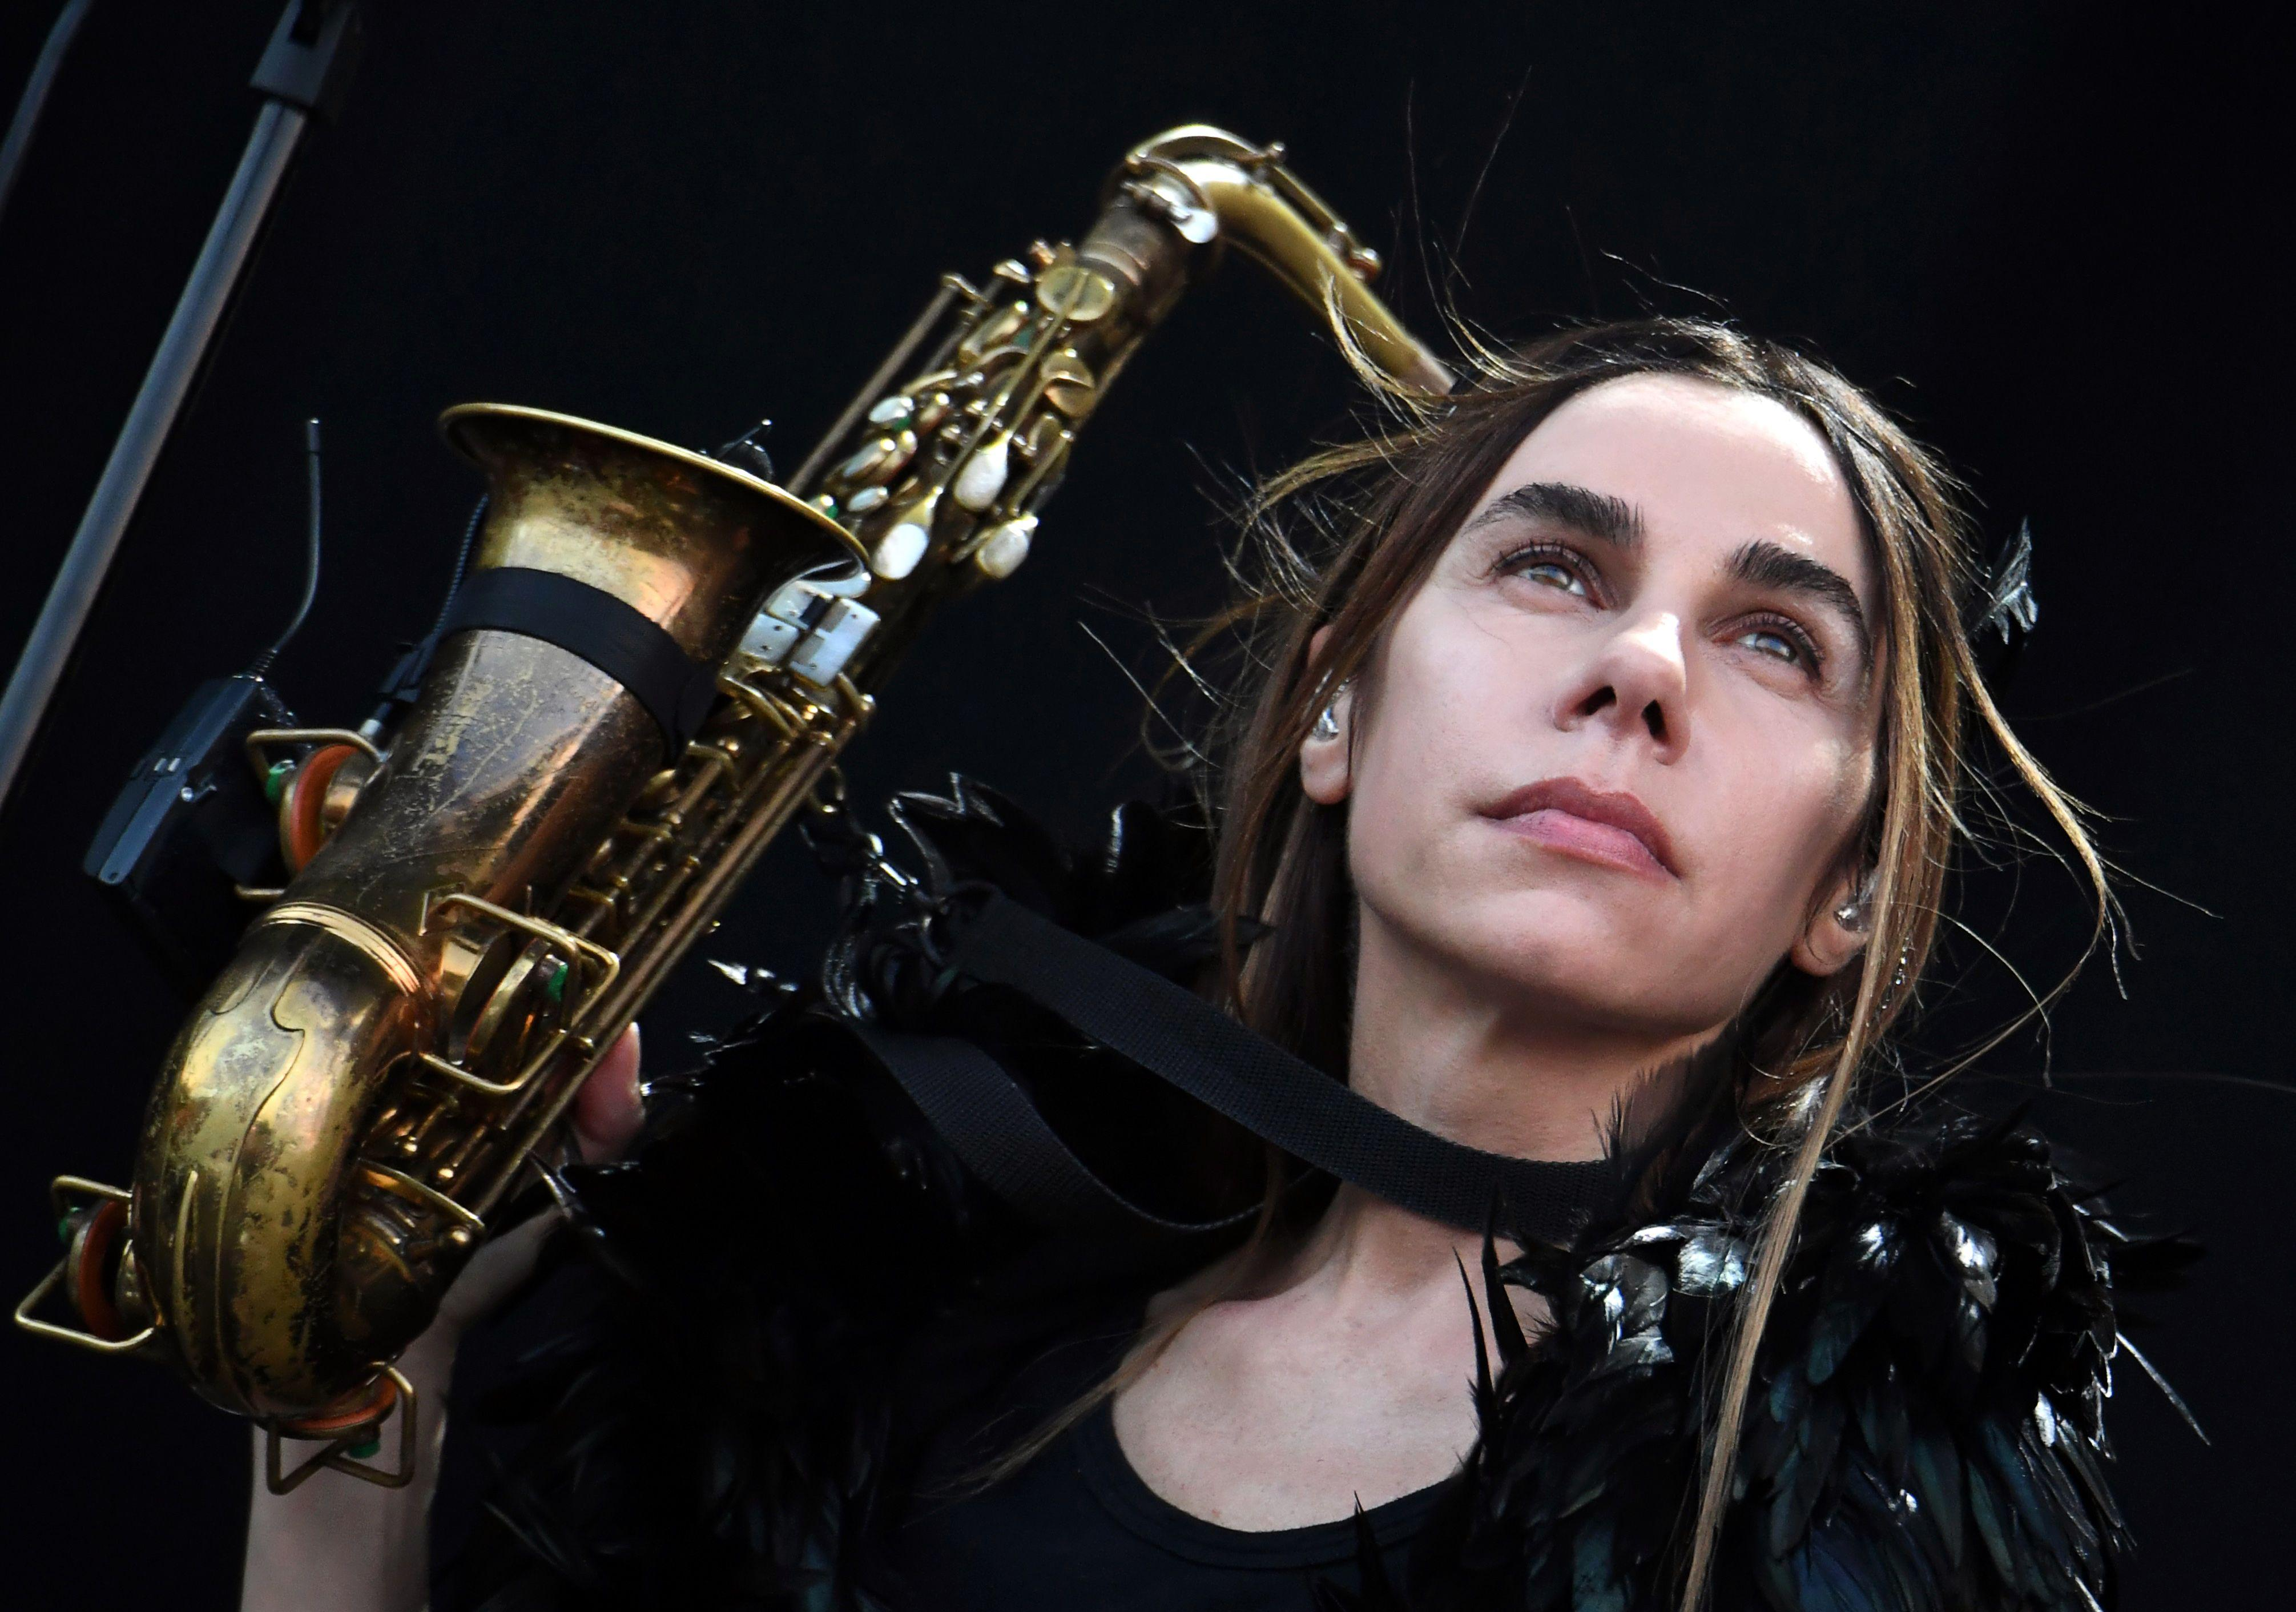 PJ Harvey, with an aloof stare and black-feathered get-up, holds a saxophone in front of a black background